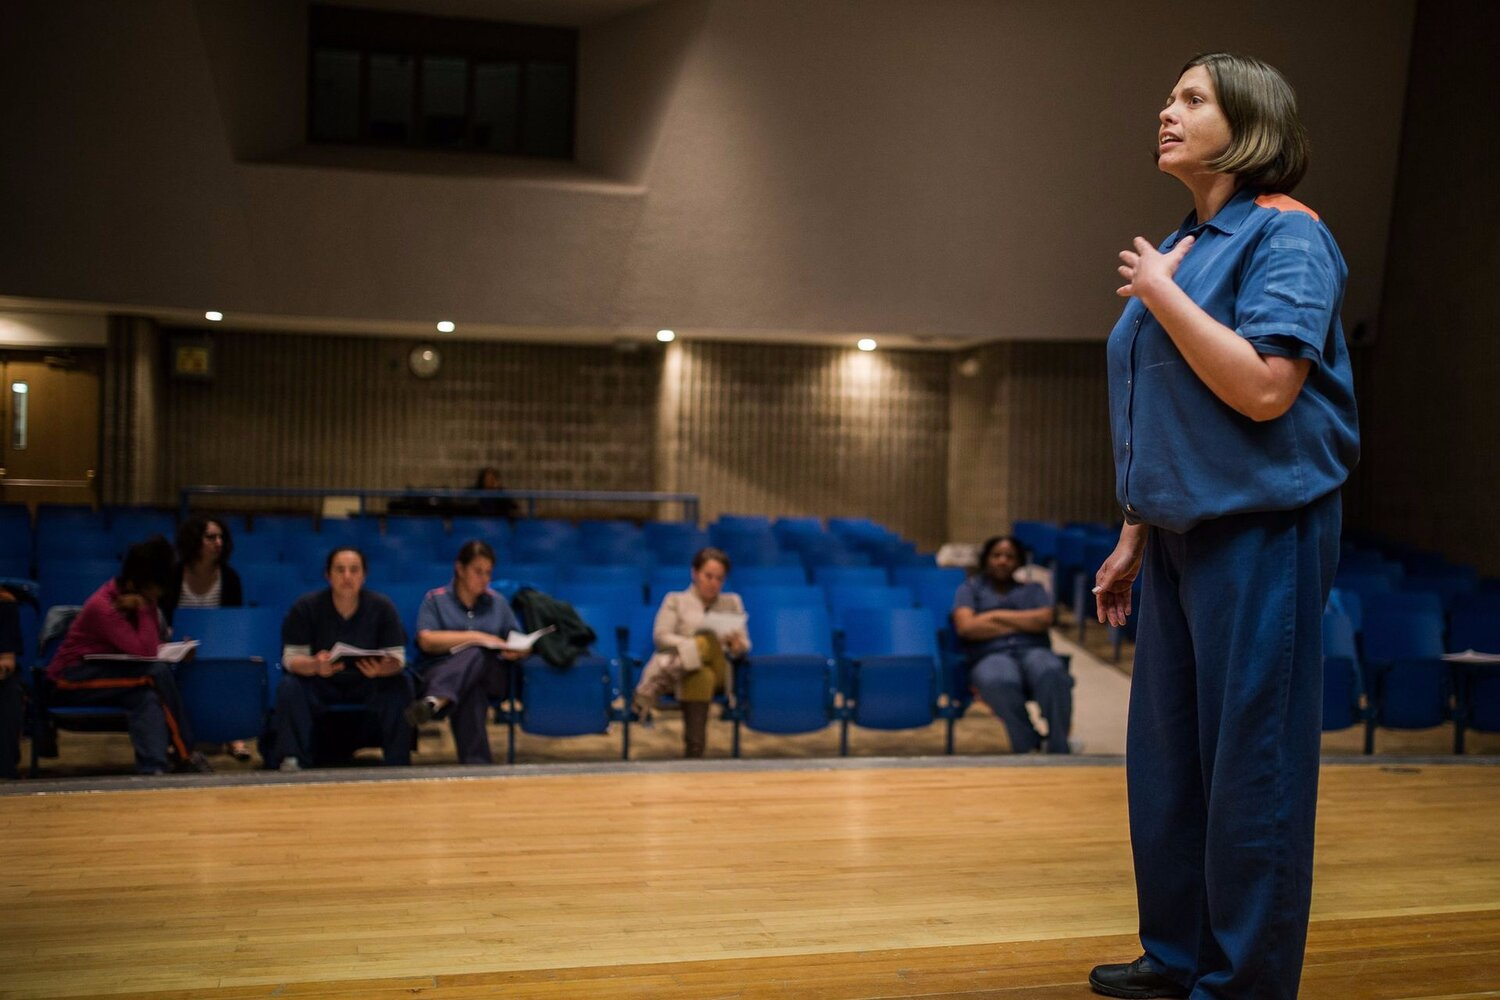 For female inmates, Shakespeare is liberating - Detroit Free Press / Jenn McKeeJune 18, 2016